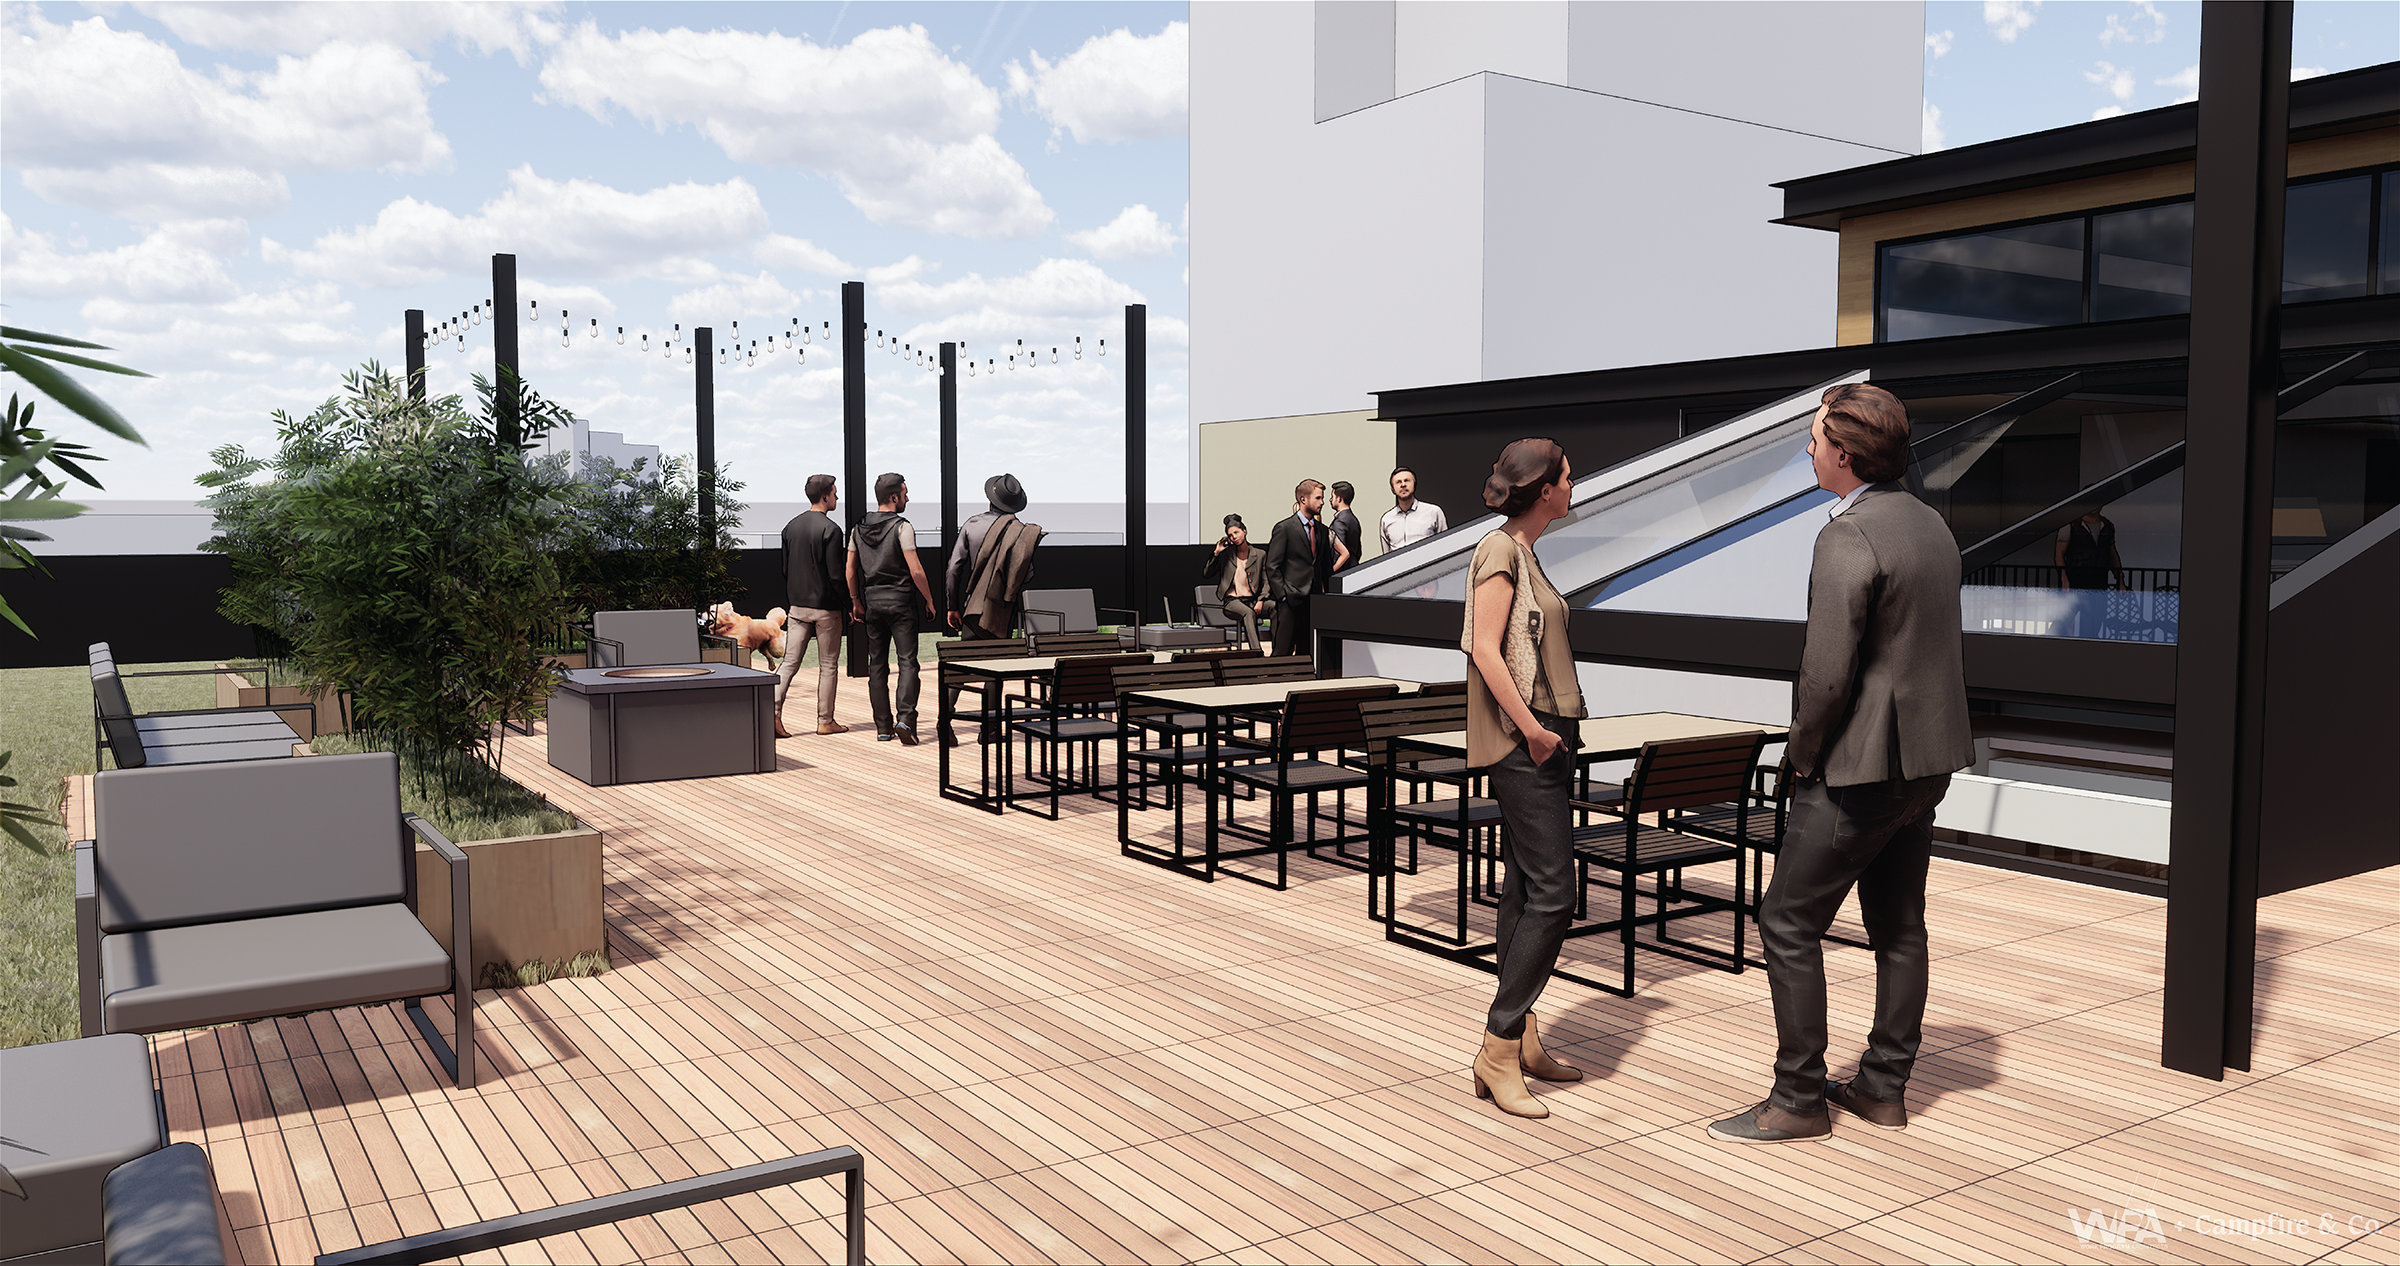 ASSEMBLY_Terrace_19-03-20.png